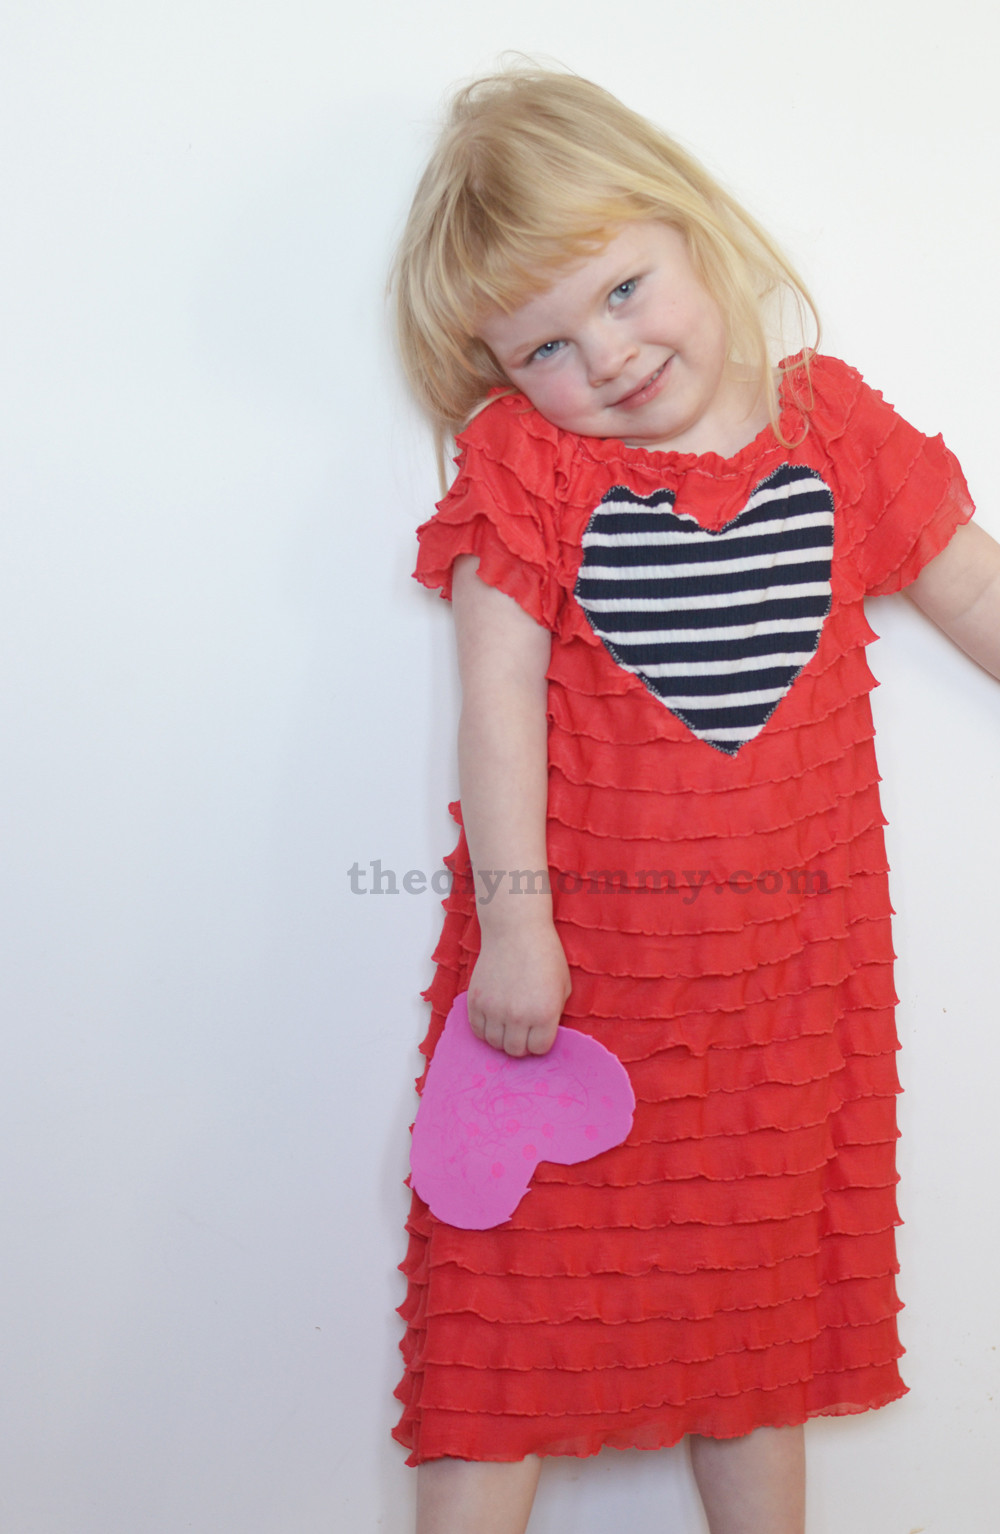 Best ideas about DIY Toddler Dress . Save or Pin Sew an Easy Valentine Dress with Ruffle Fabric Now.